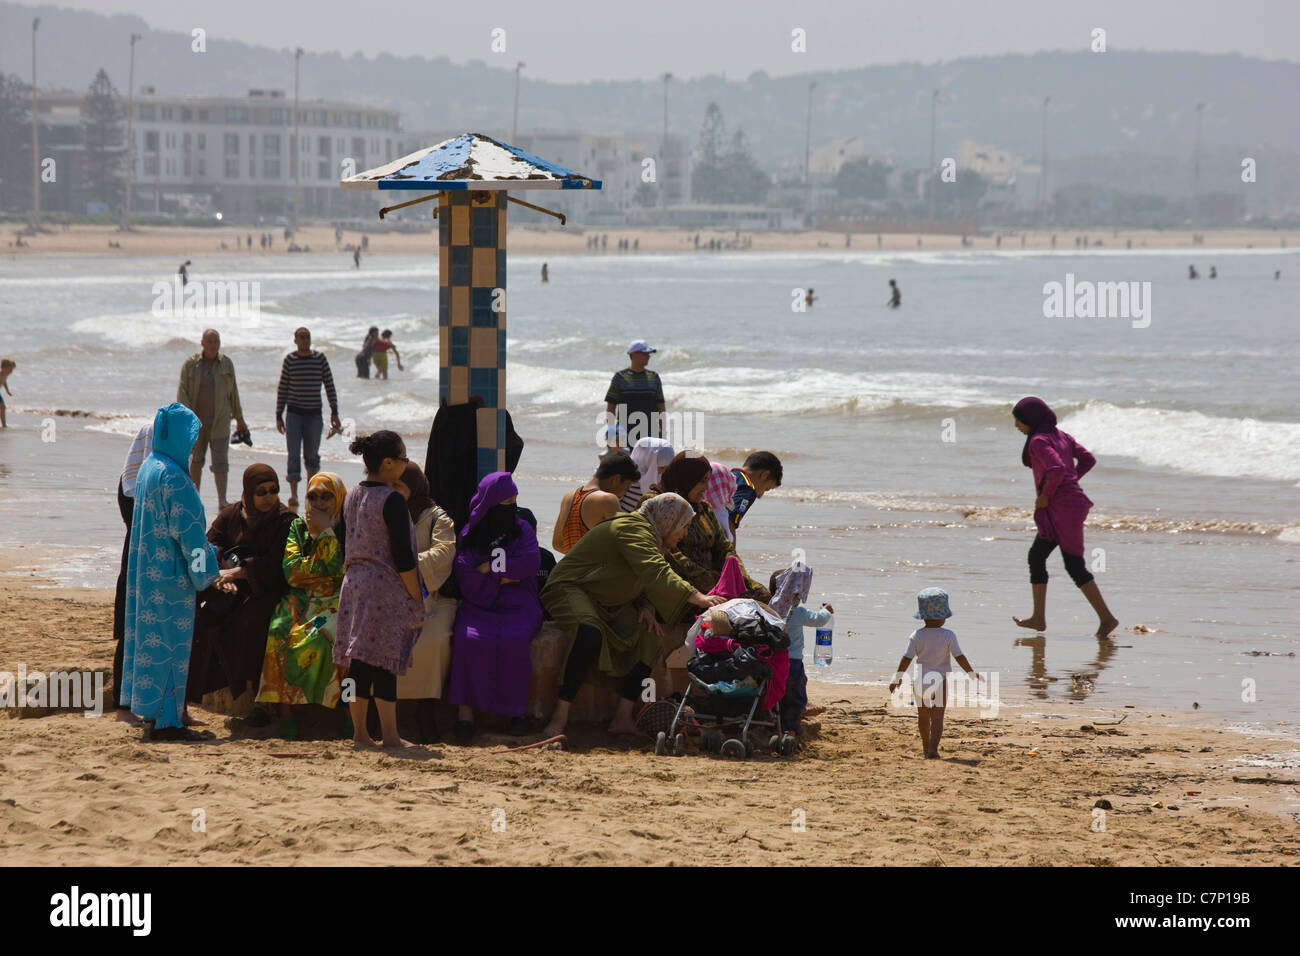 Families on the beach in Essaouira, Morocco - Stock Image